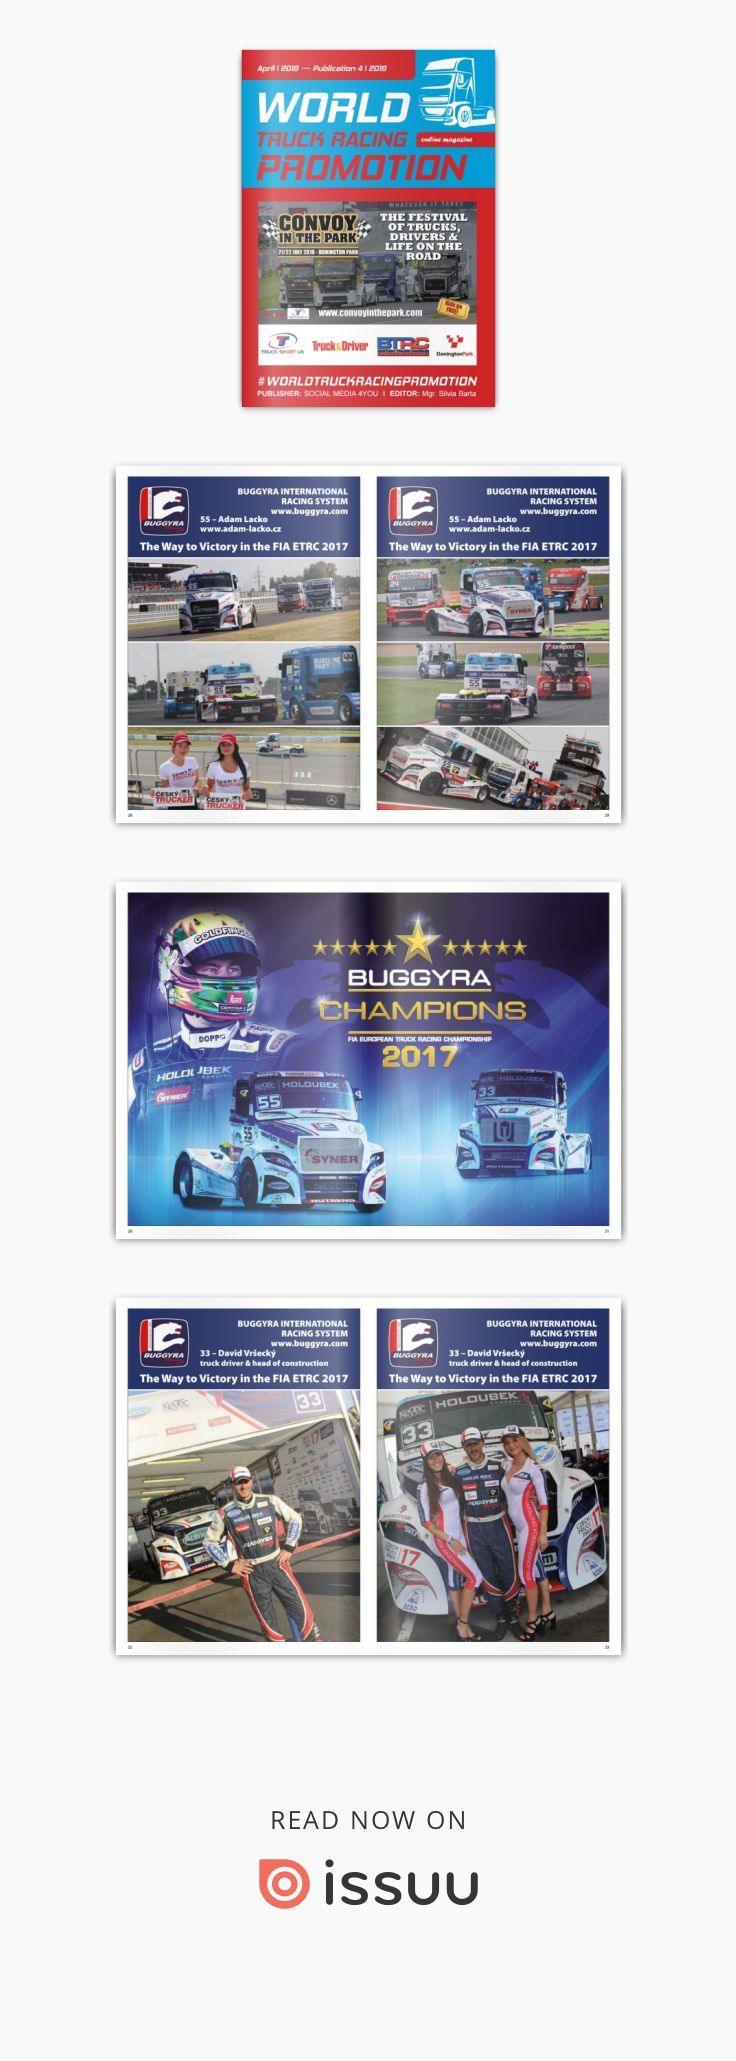 WORLD TRUCK RACING PROMOTION - April 2019  WORLD TRUCK RACING PROMOTION It is an Internet magazine that is published in digital form once a month. Its content focuses on the worldwide promotion and advertising of truck racing on race circuits as well as associated truck shows and truck festivals.